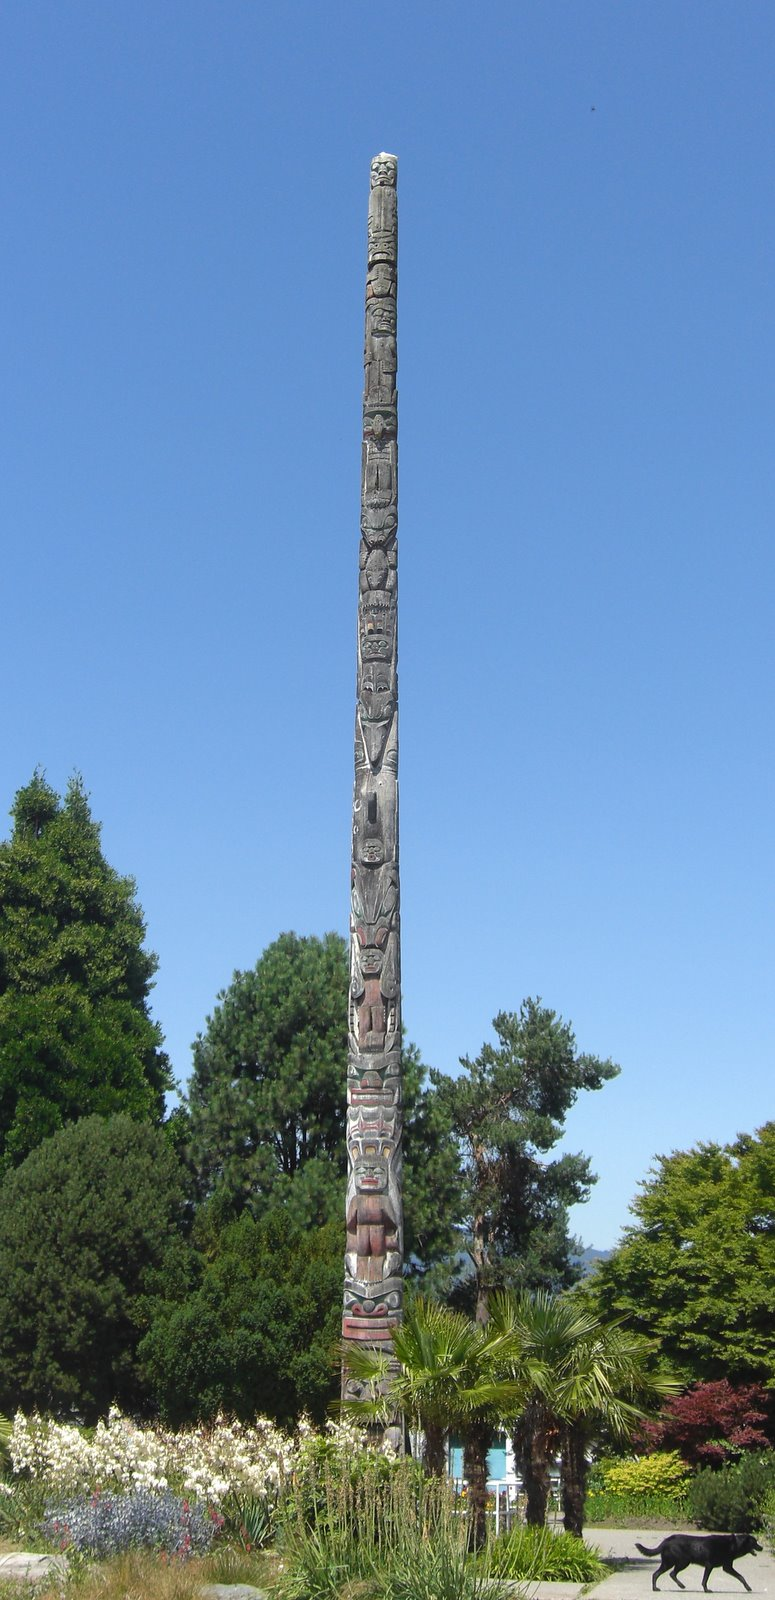 A Totem Pole in Kits